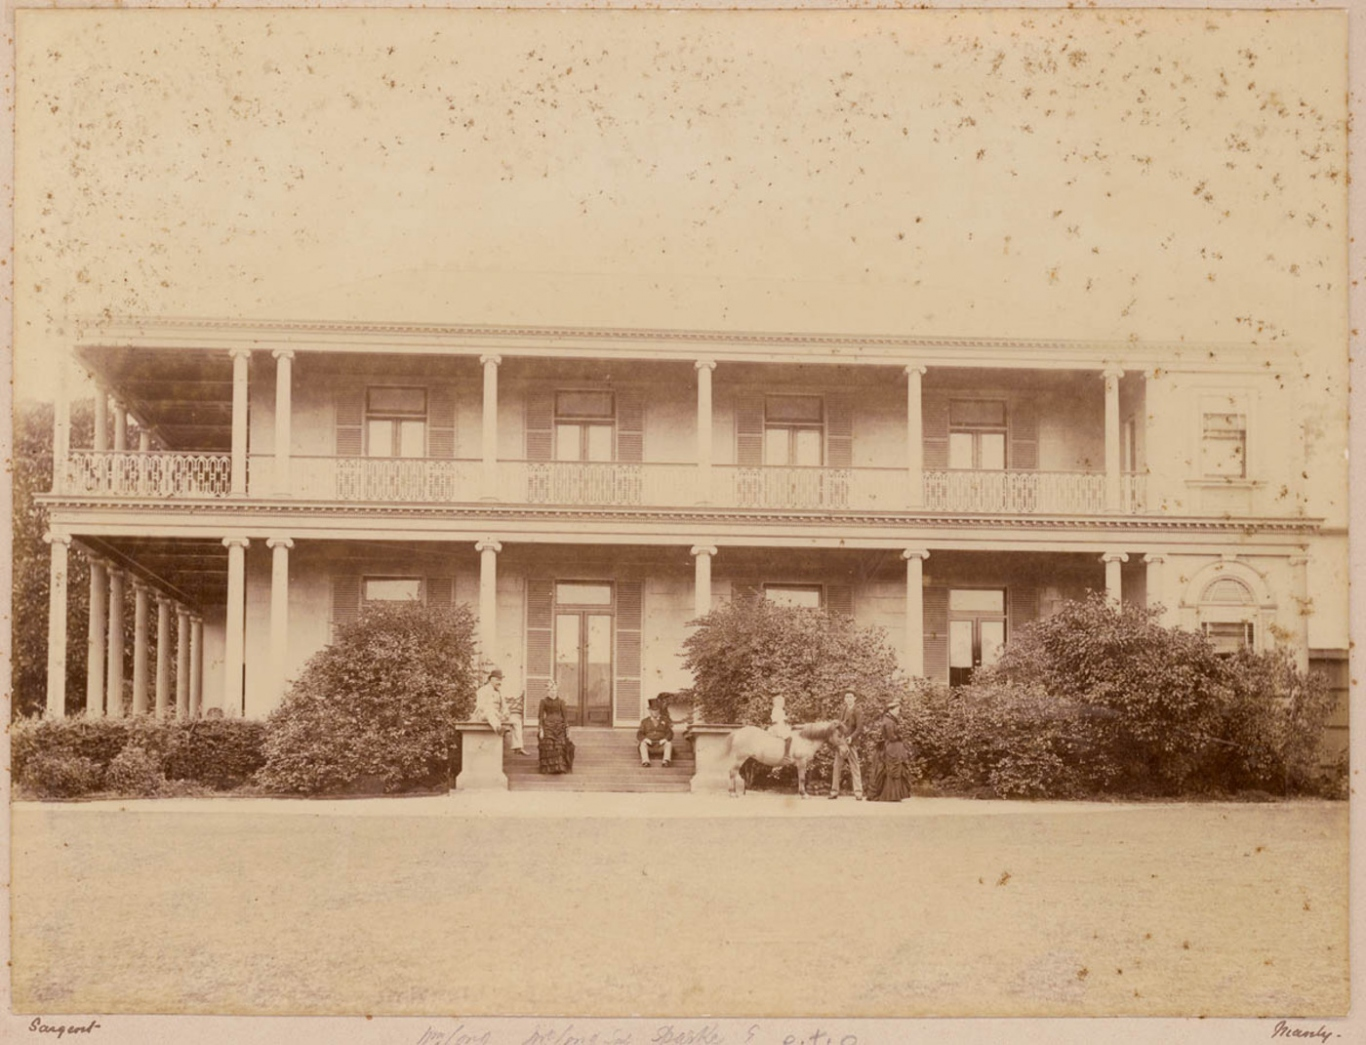 Old black and white print of two storey house with wide colonial style verandahs wrapped around it.